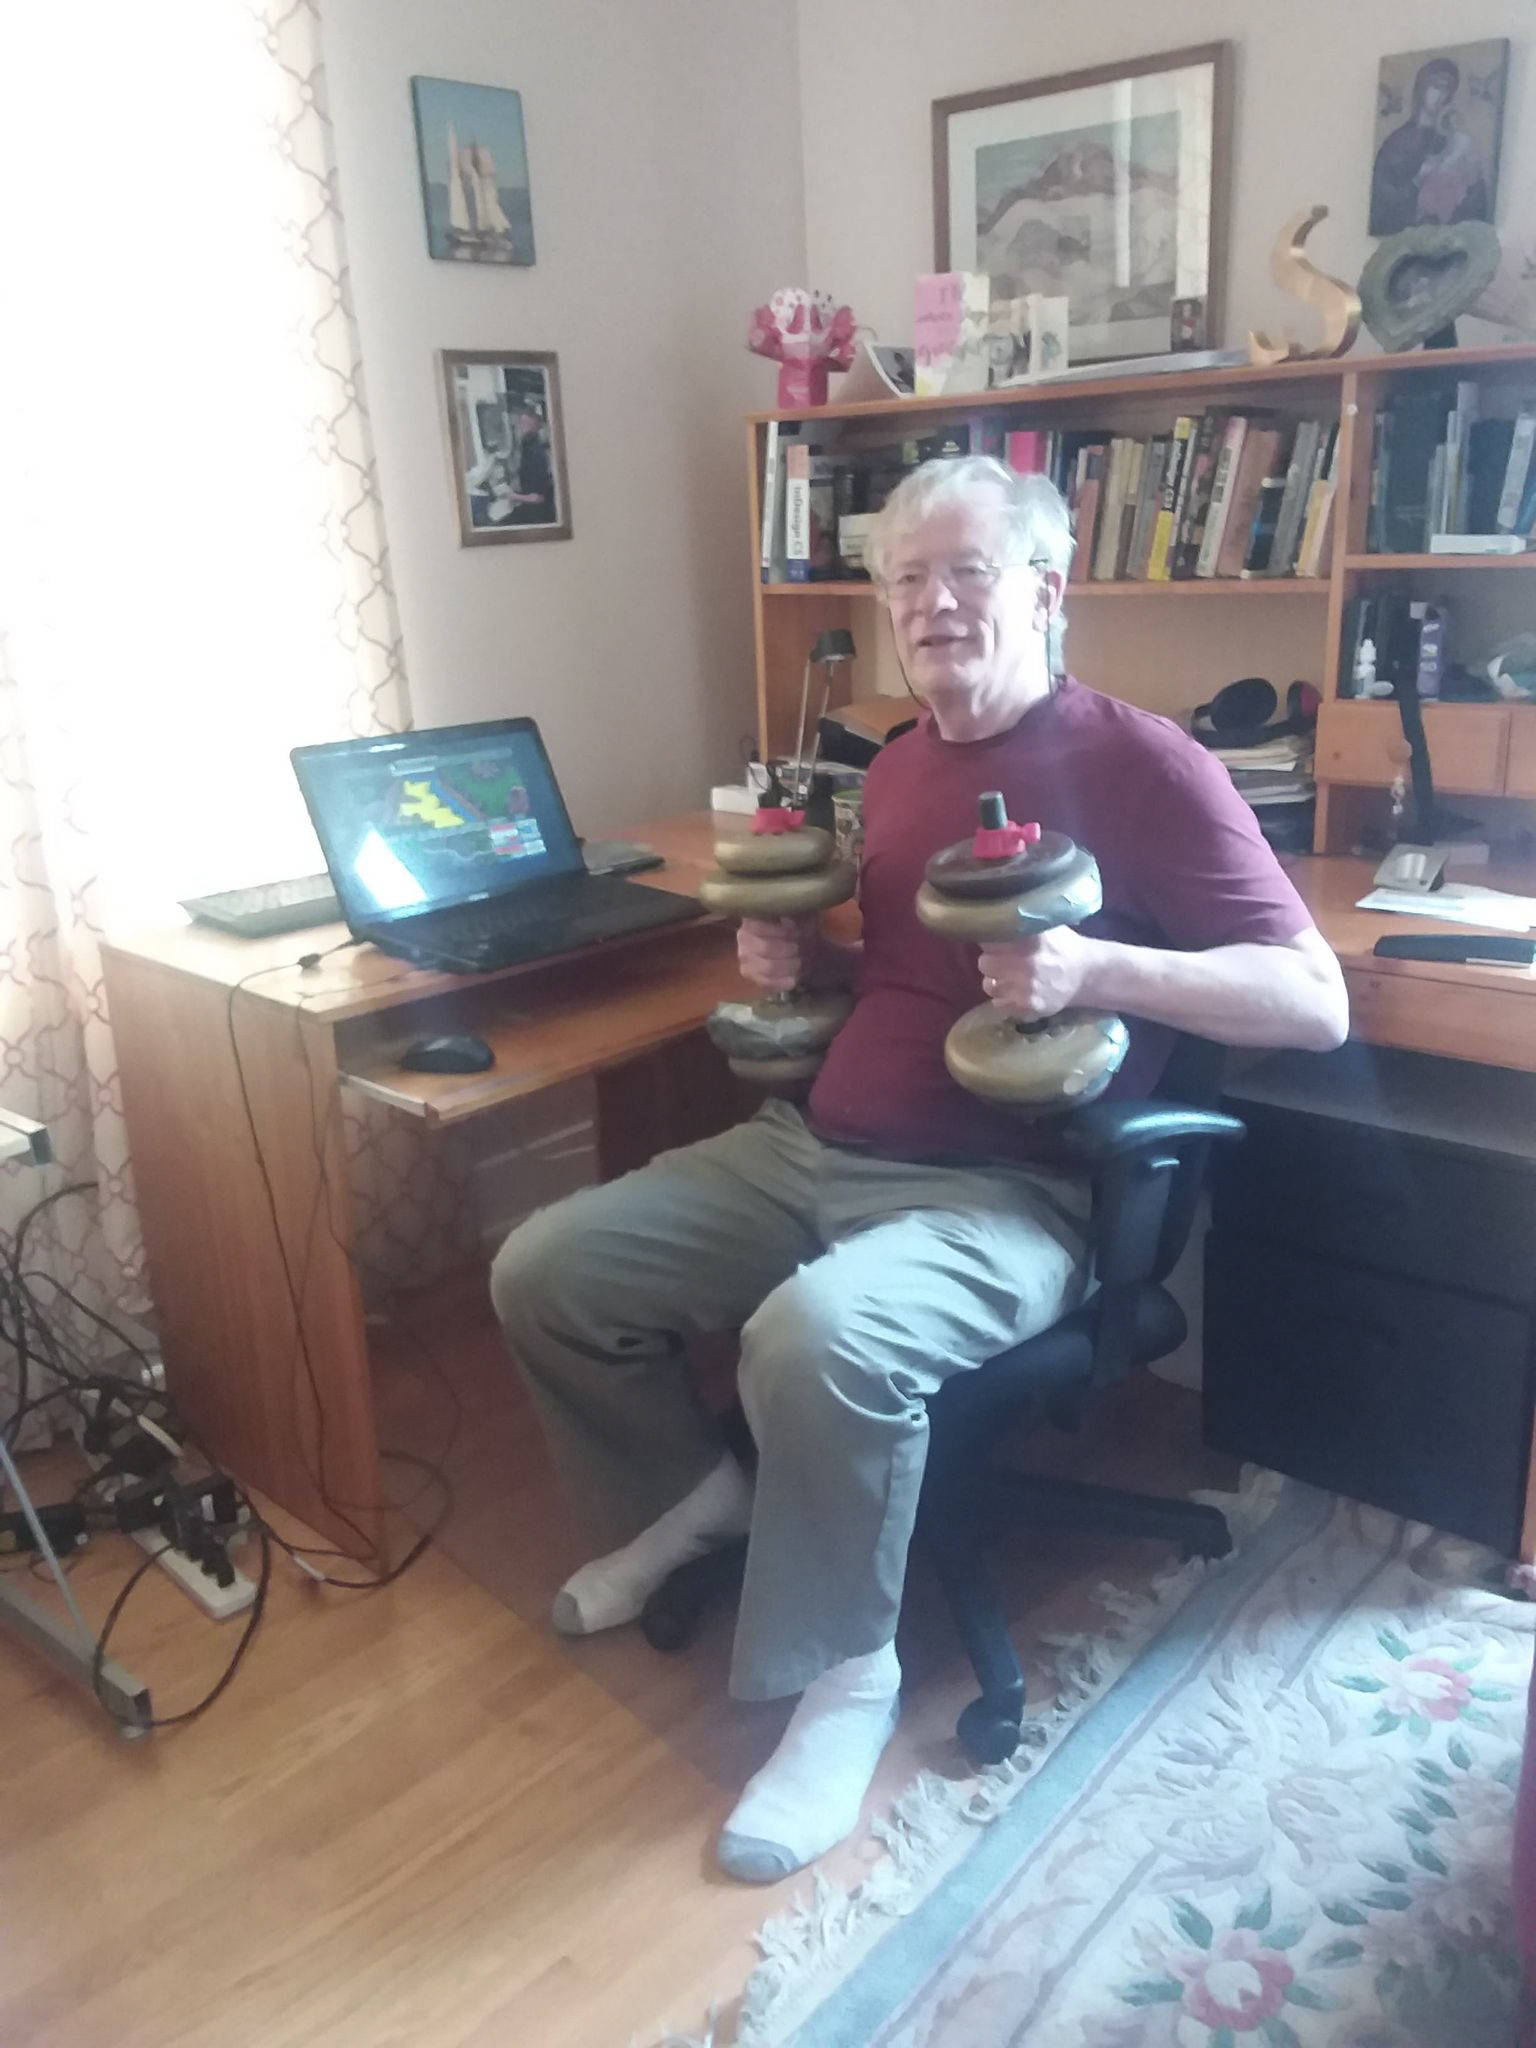 Steve Weatherbe has started exercising and playing a turn-based computer game from the 1990s. Whenever it's the computer's turn, he lifts weights. (Courtesy of Steve Weatherbe)